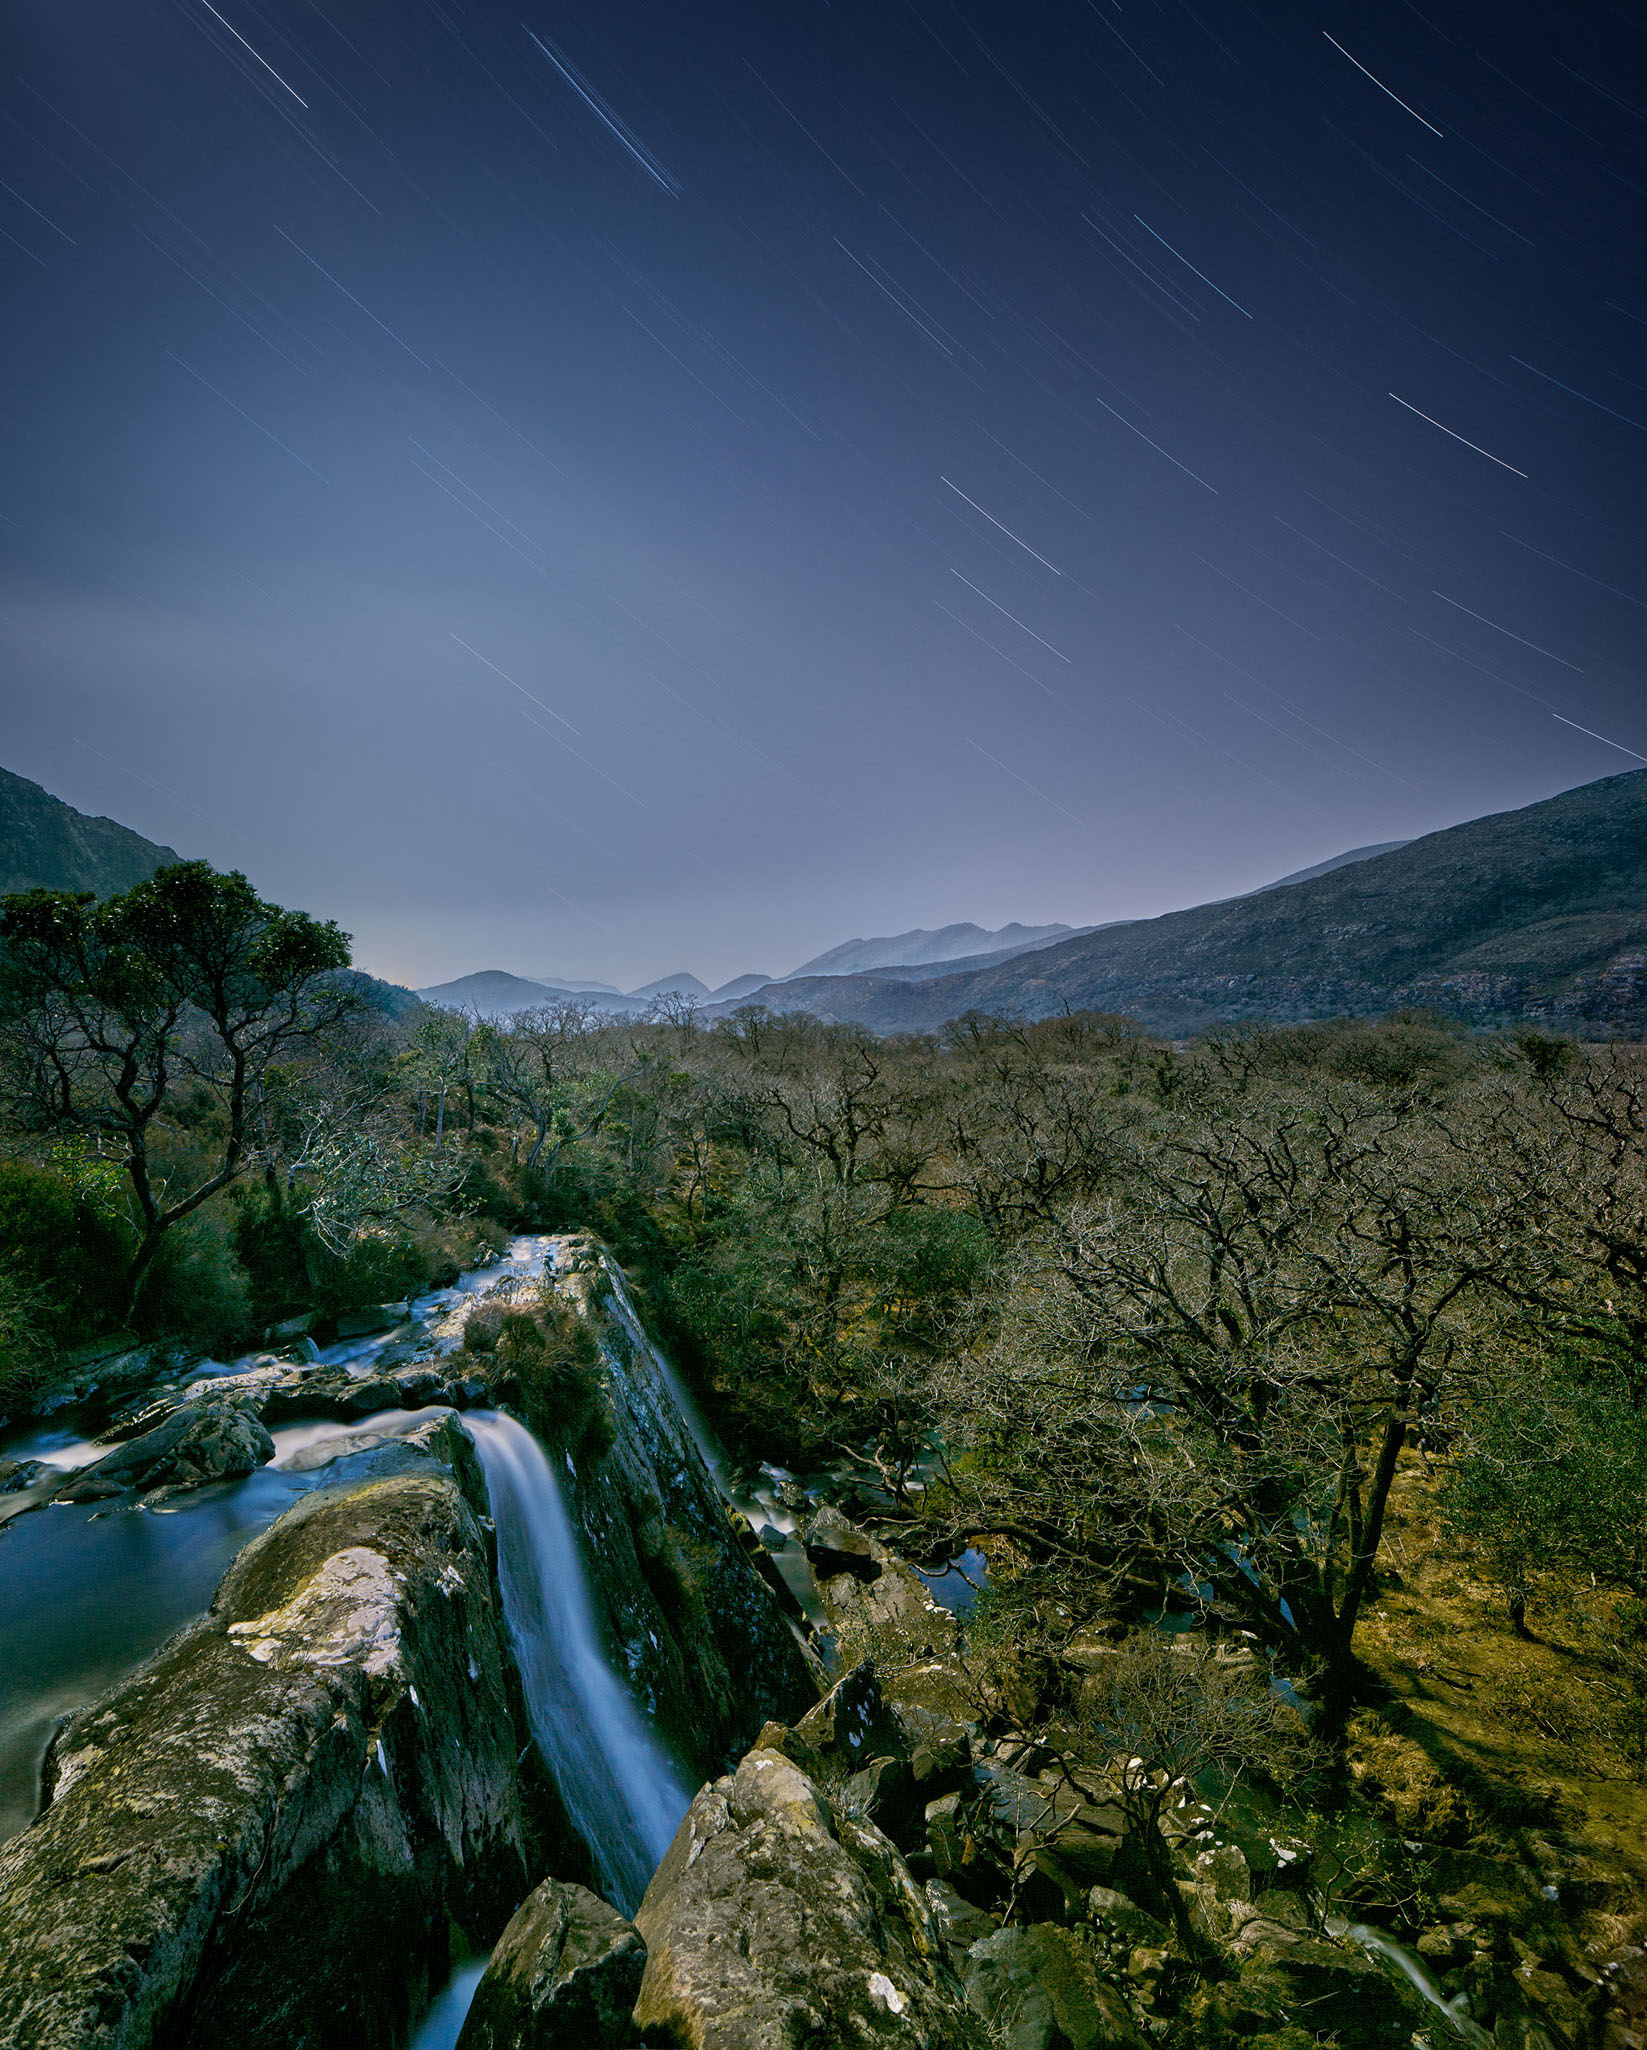 Tower Wood Star trails photo Crinnagh waterfall